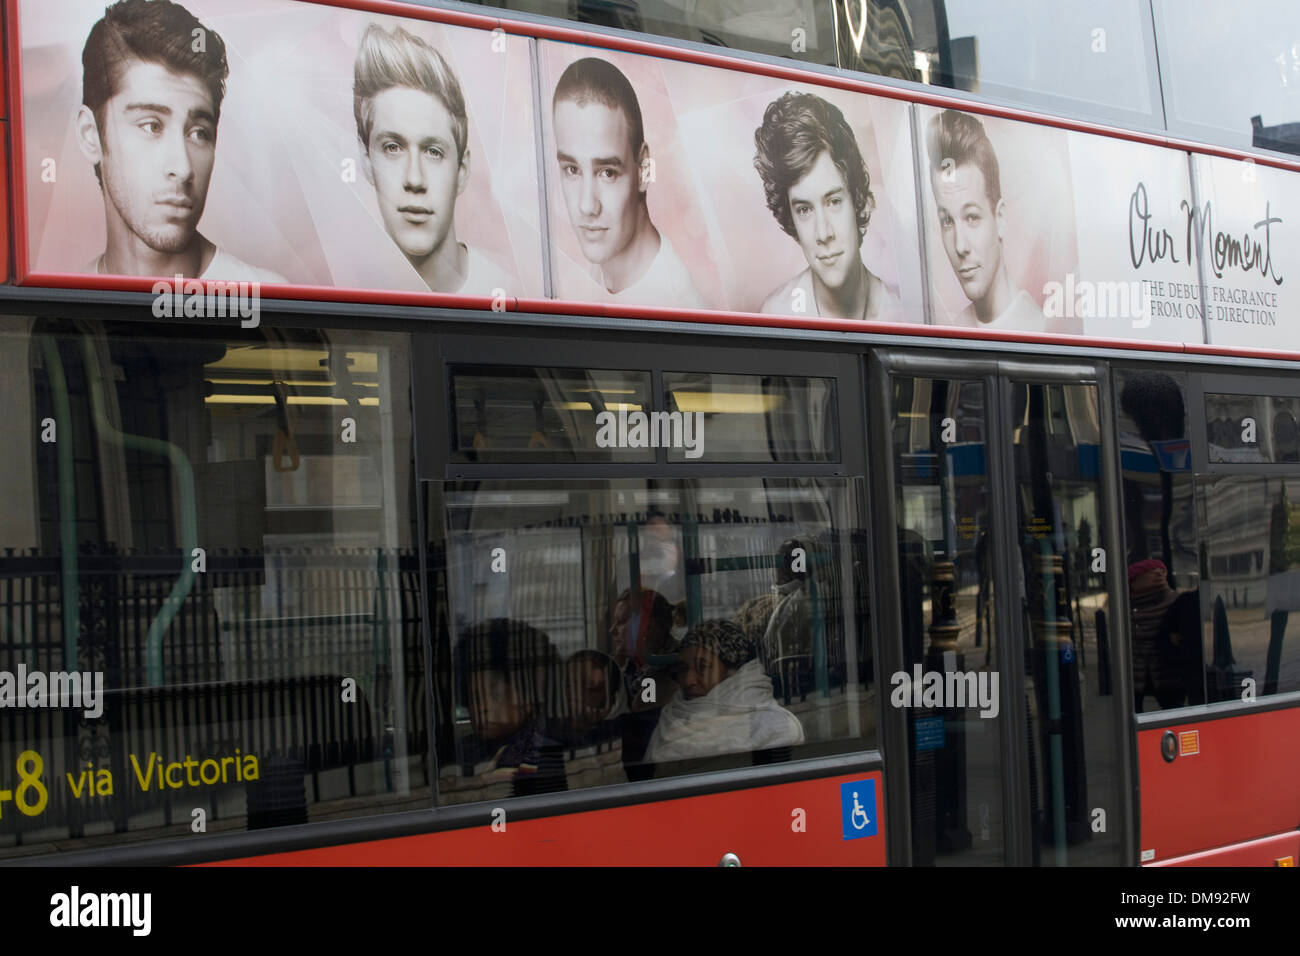 One direction 'Our Moment Fragrance' Advertisement on a London Red Bus - Stock Image